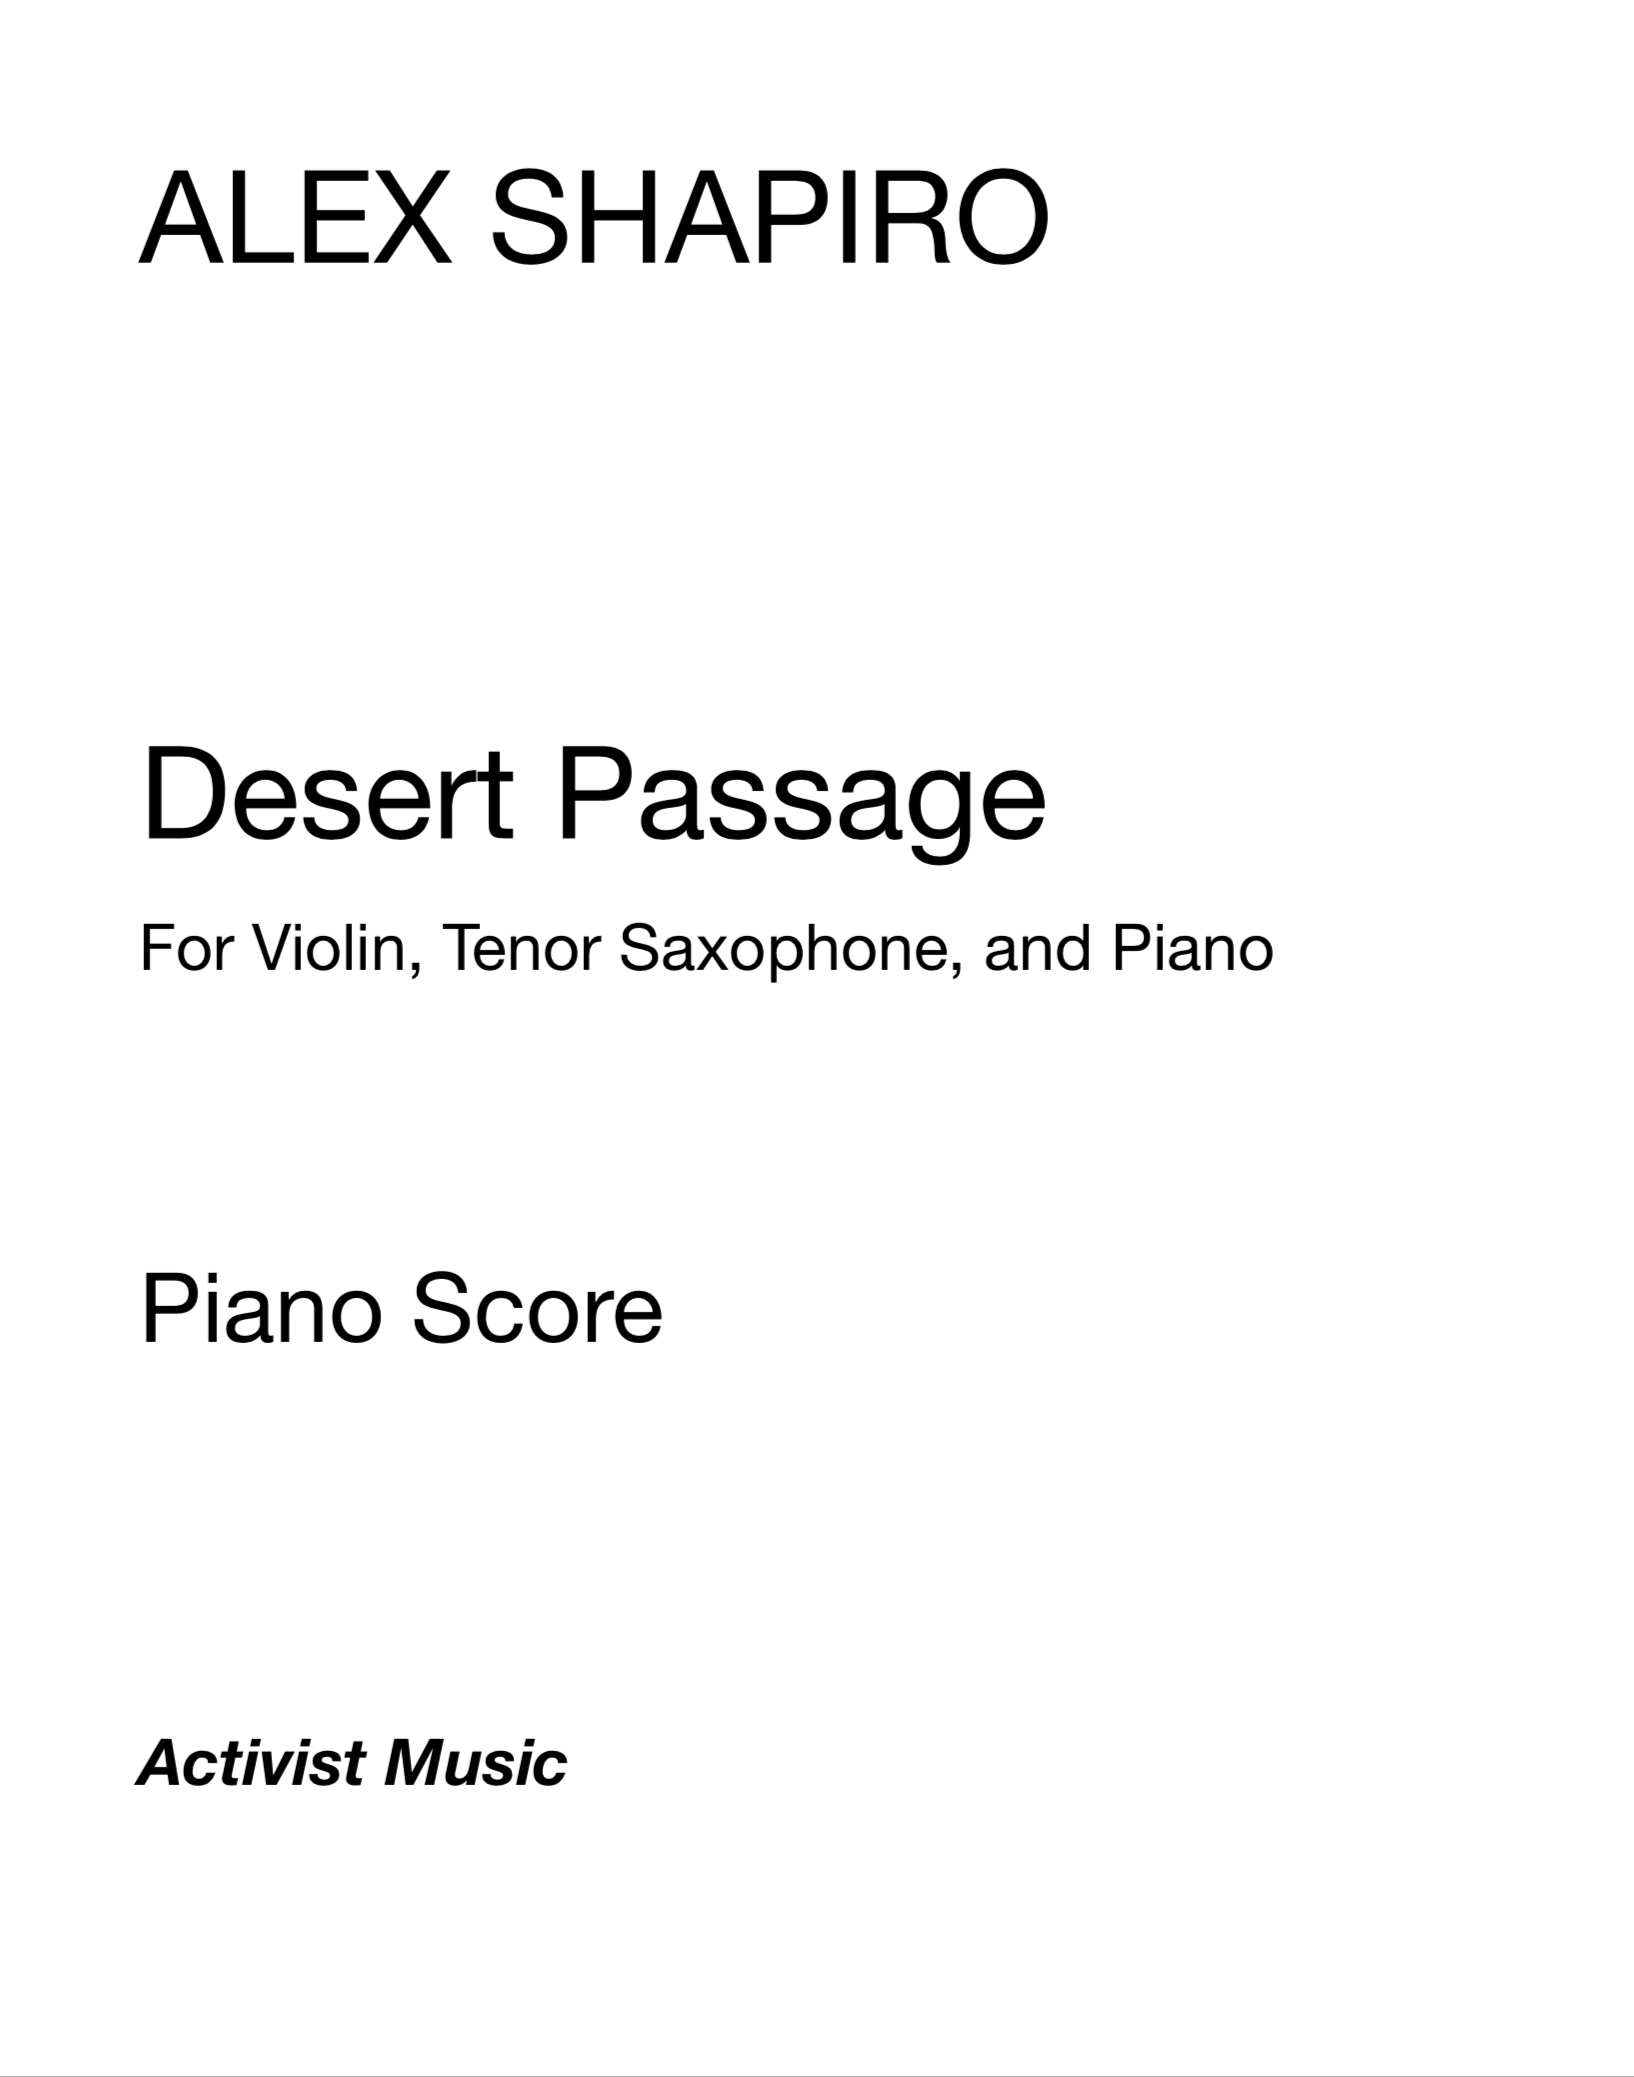 Desert Passage  by Alex Shapiro